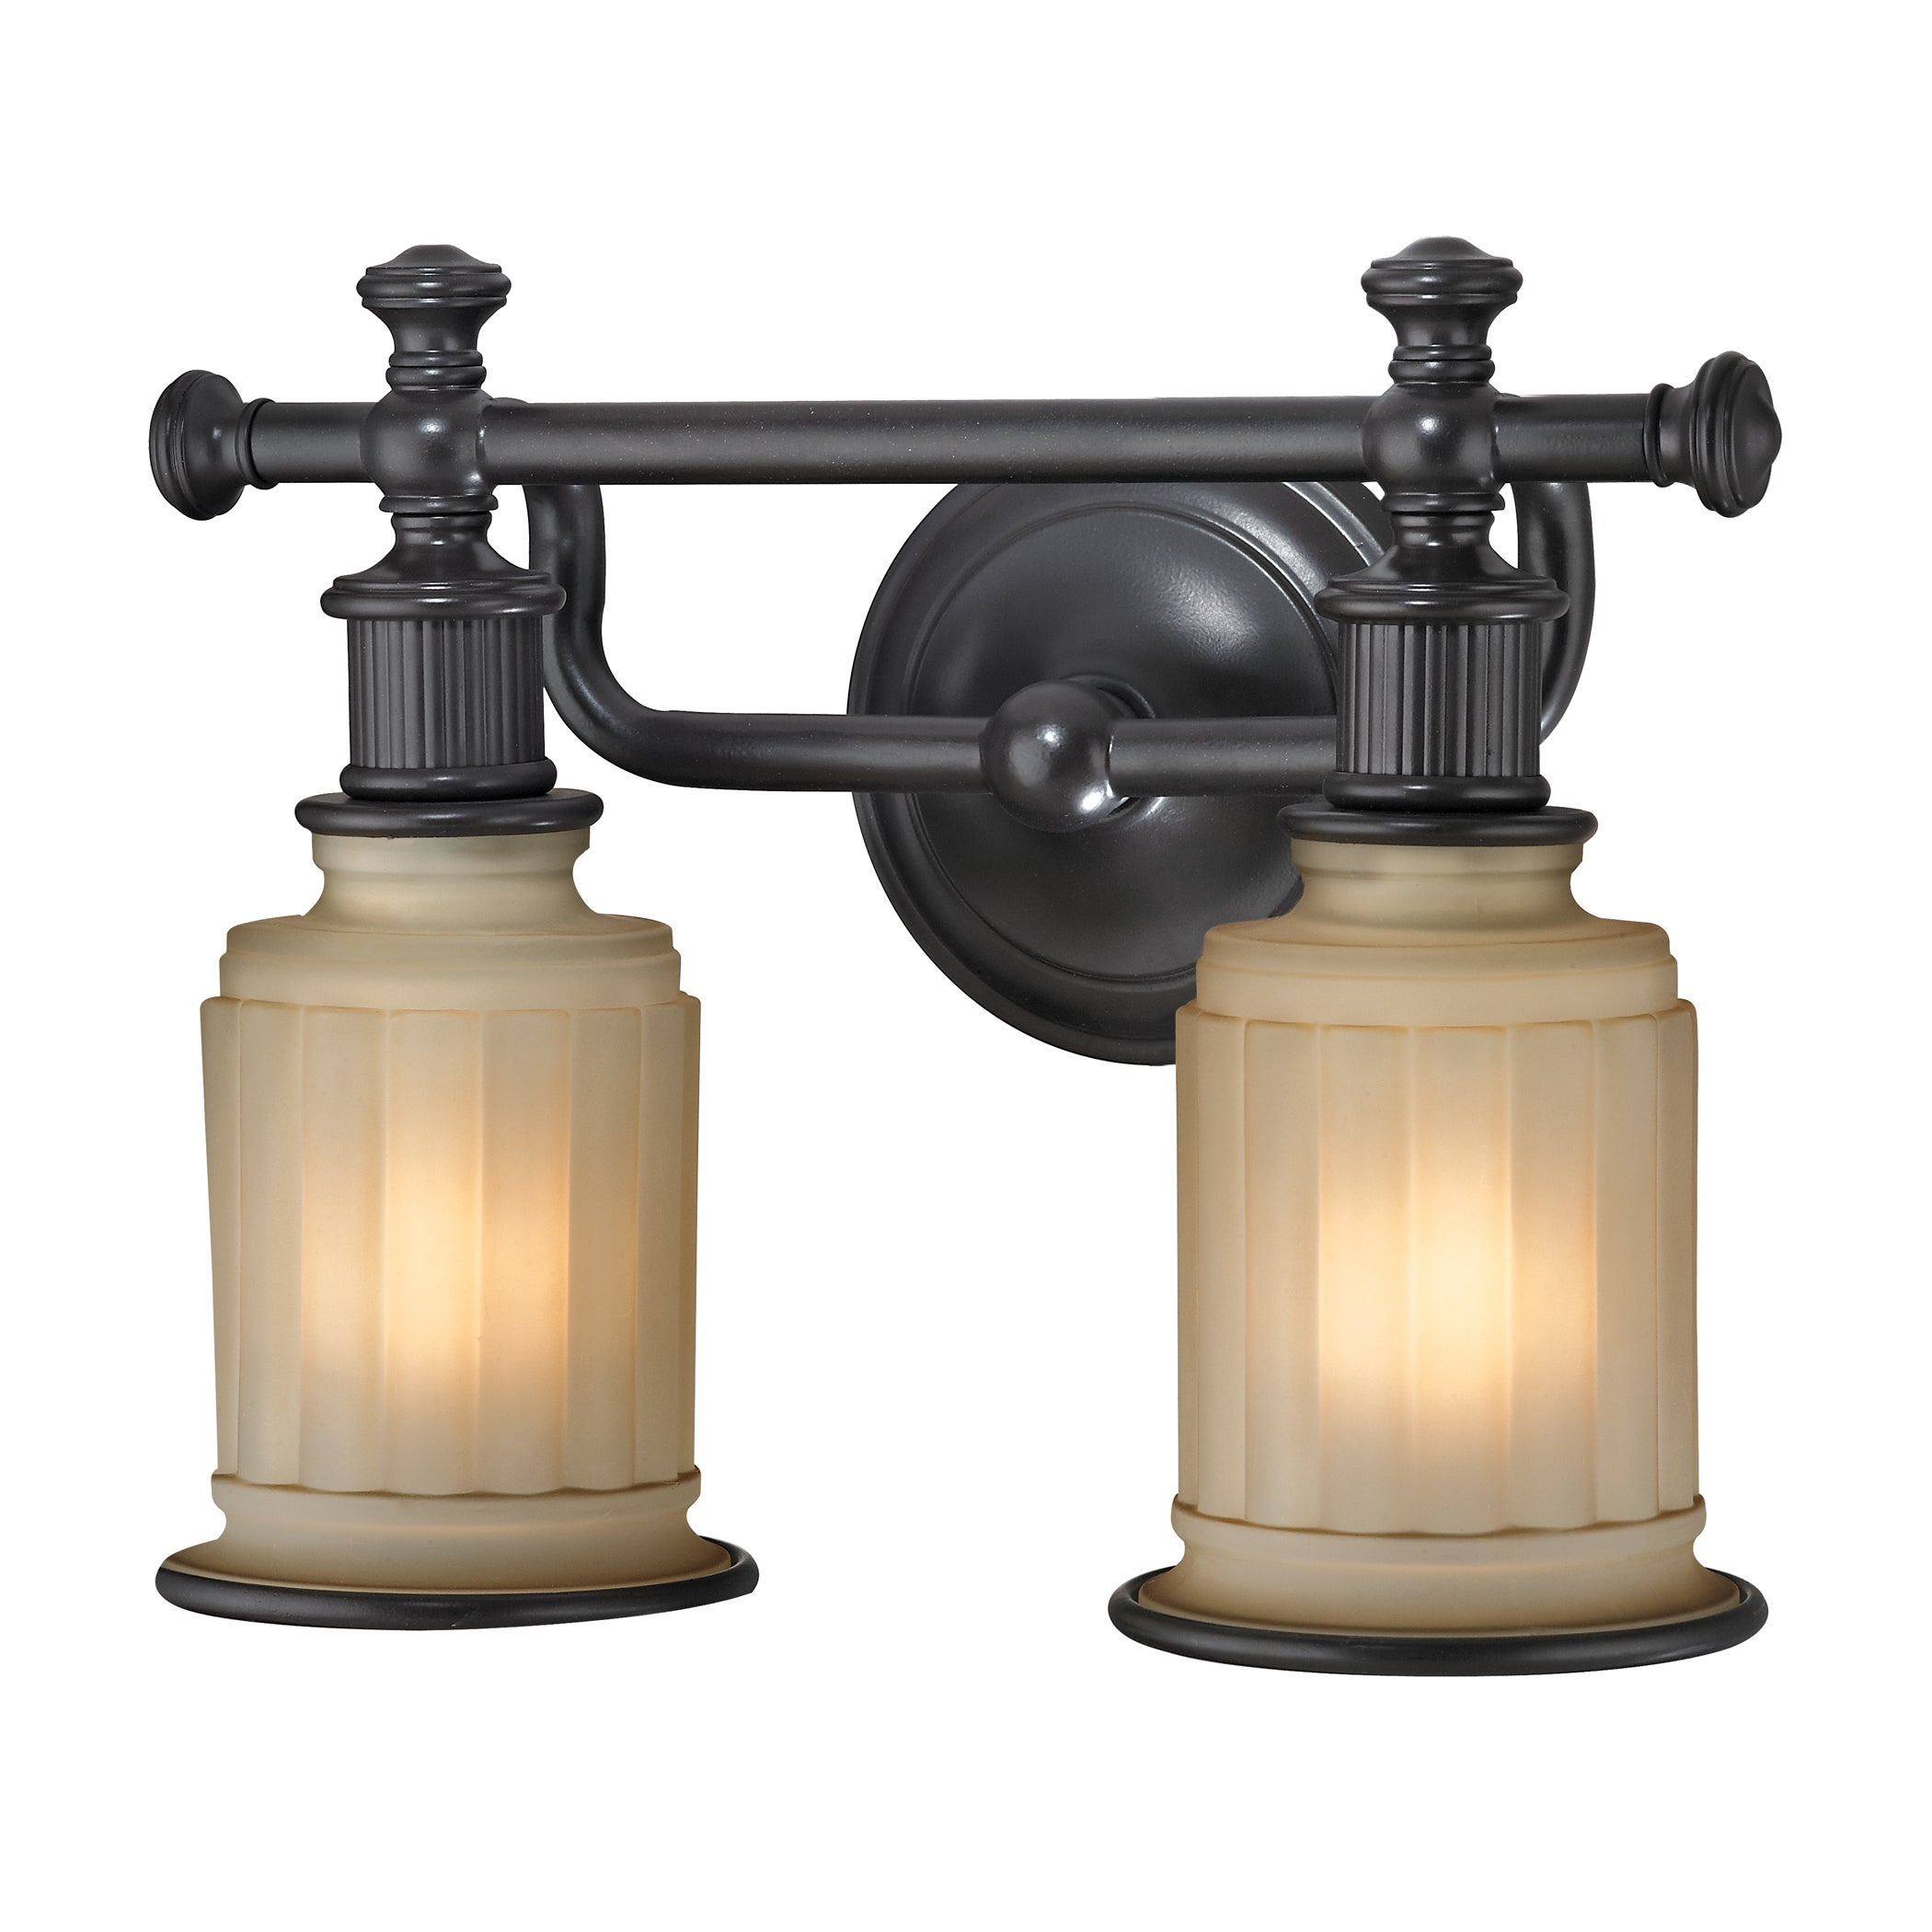 Shop Acadia 2 Light Oil Rubbed Bronze Bath Fixture Overstock 10011885